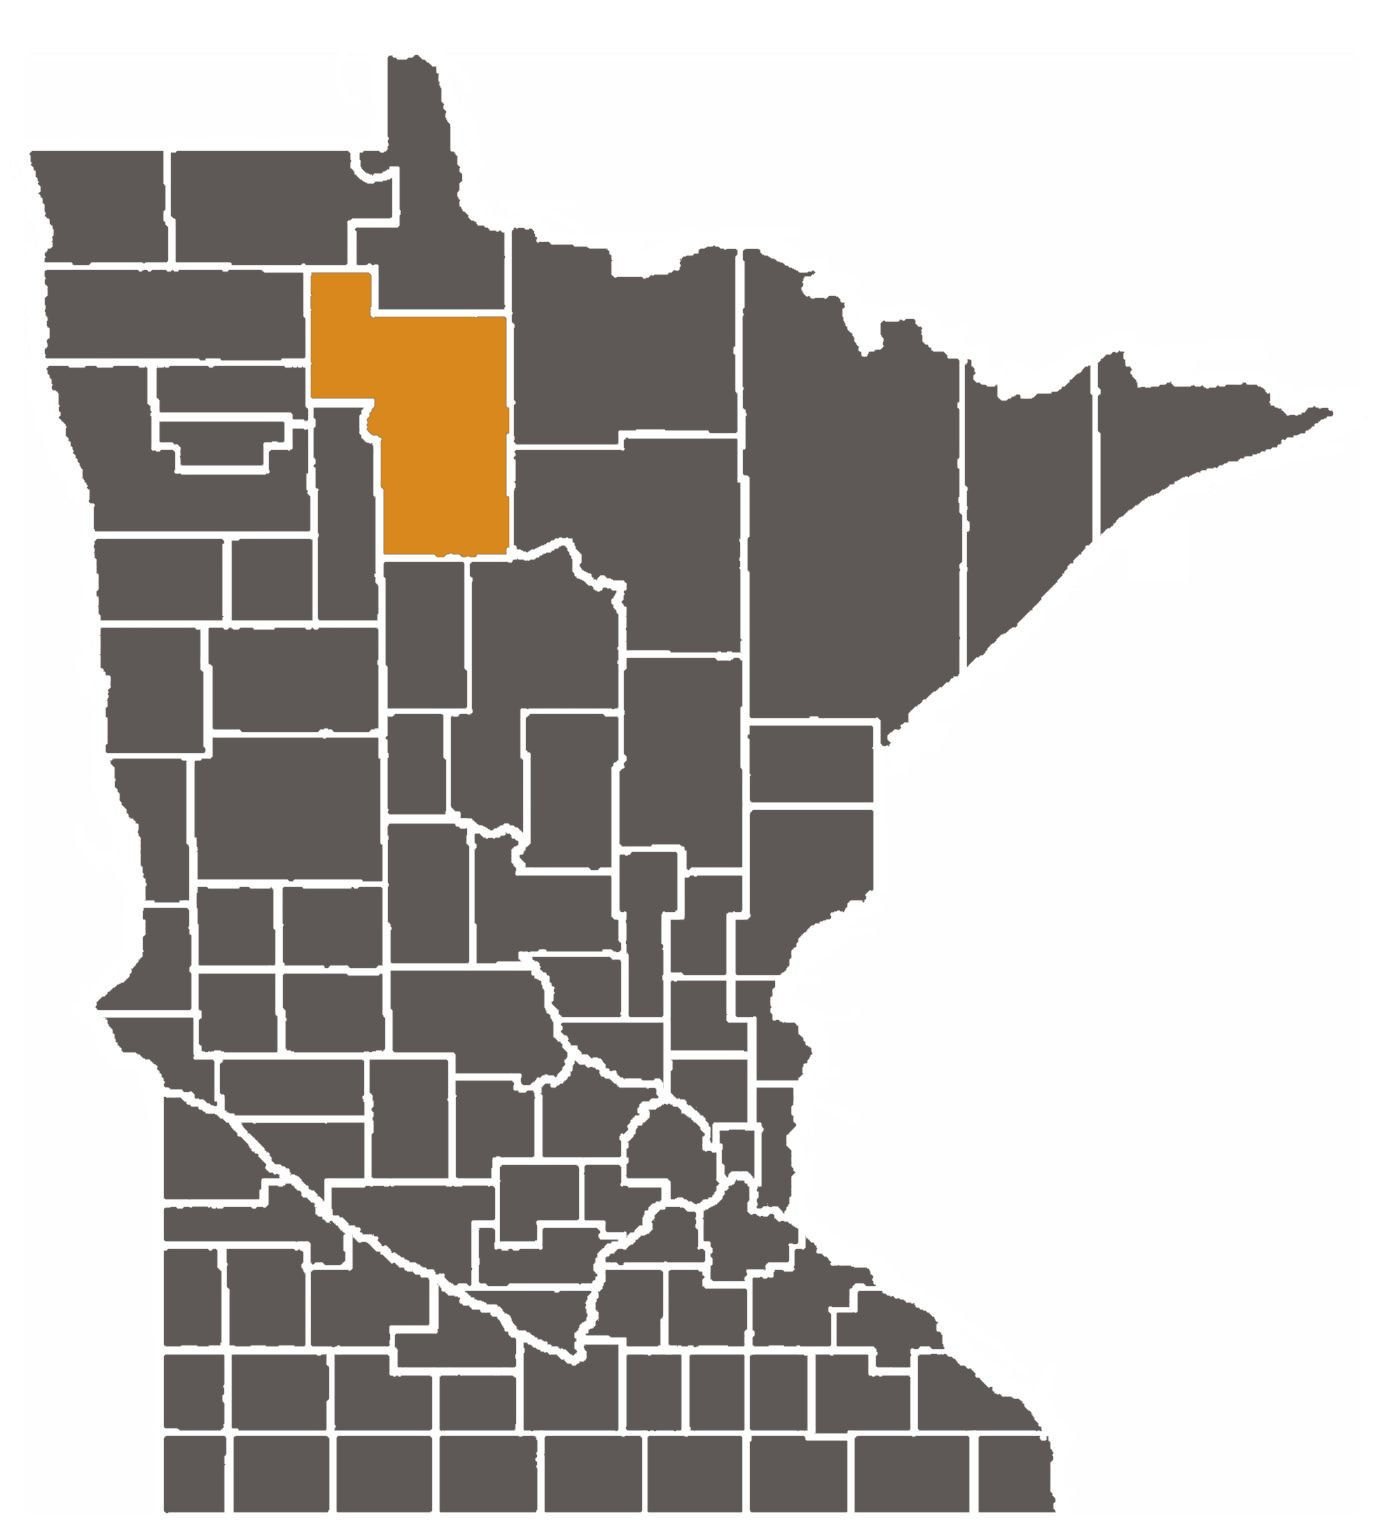 Minnesota map with Beltrami County highlighted